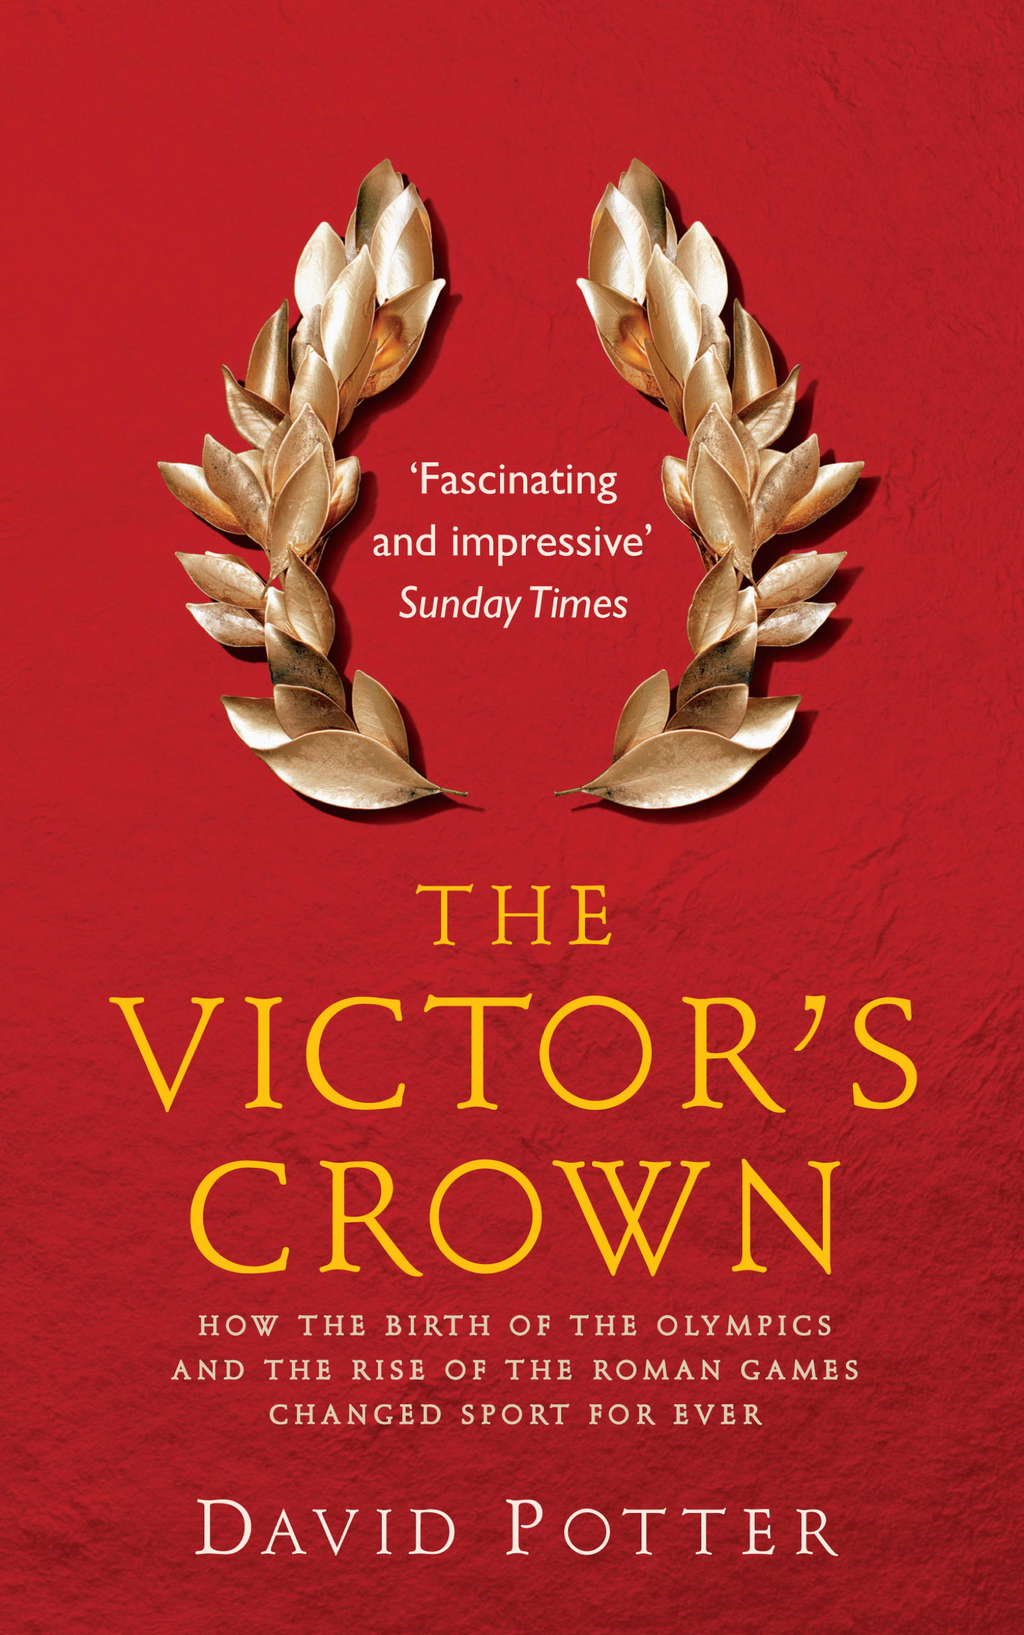 The Victor's Crown How the Birth of the Olympics and the Rise of The Roman Games Changed Sport For Ever